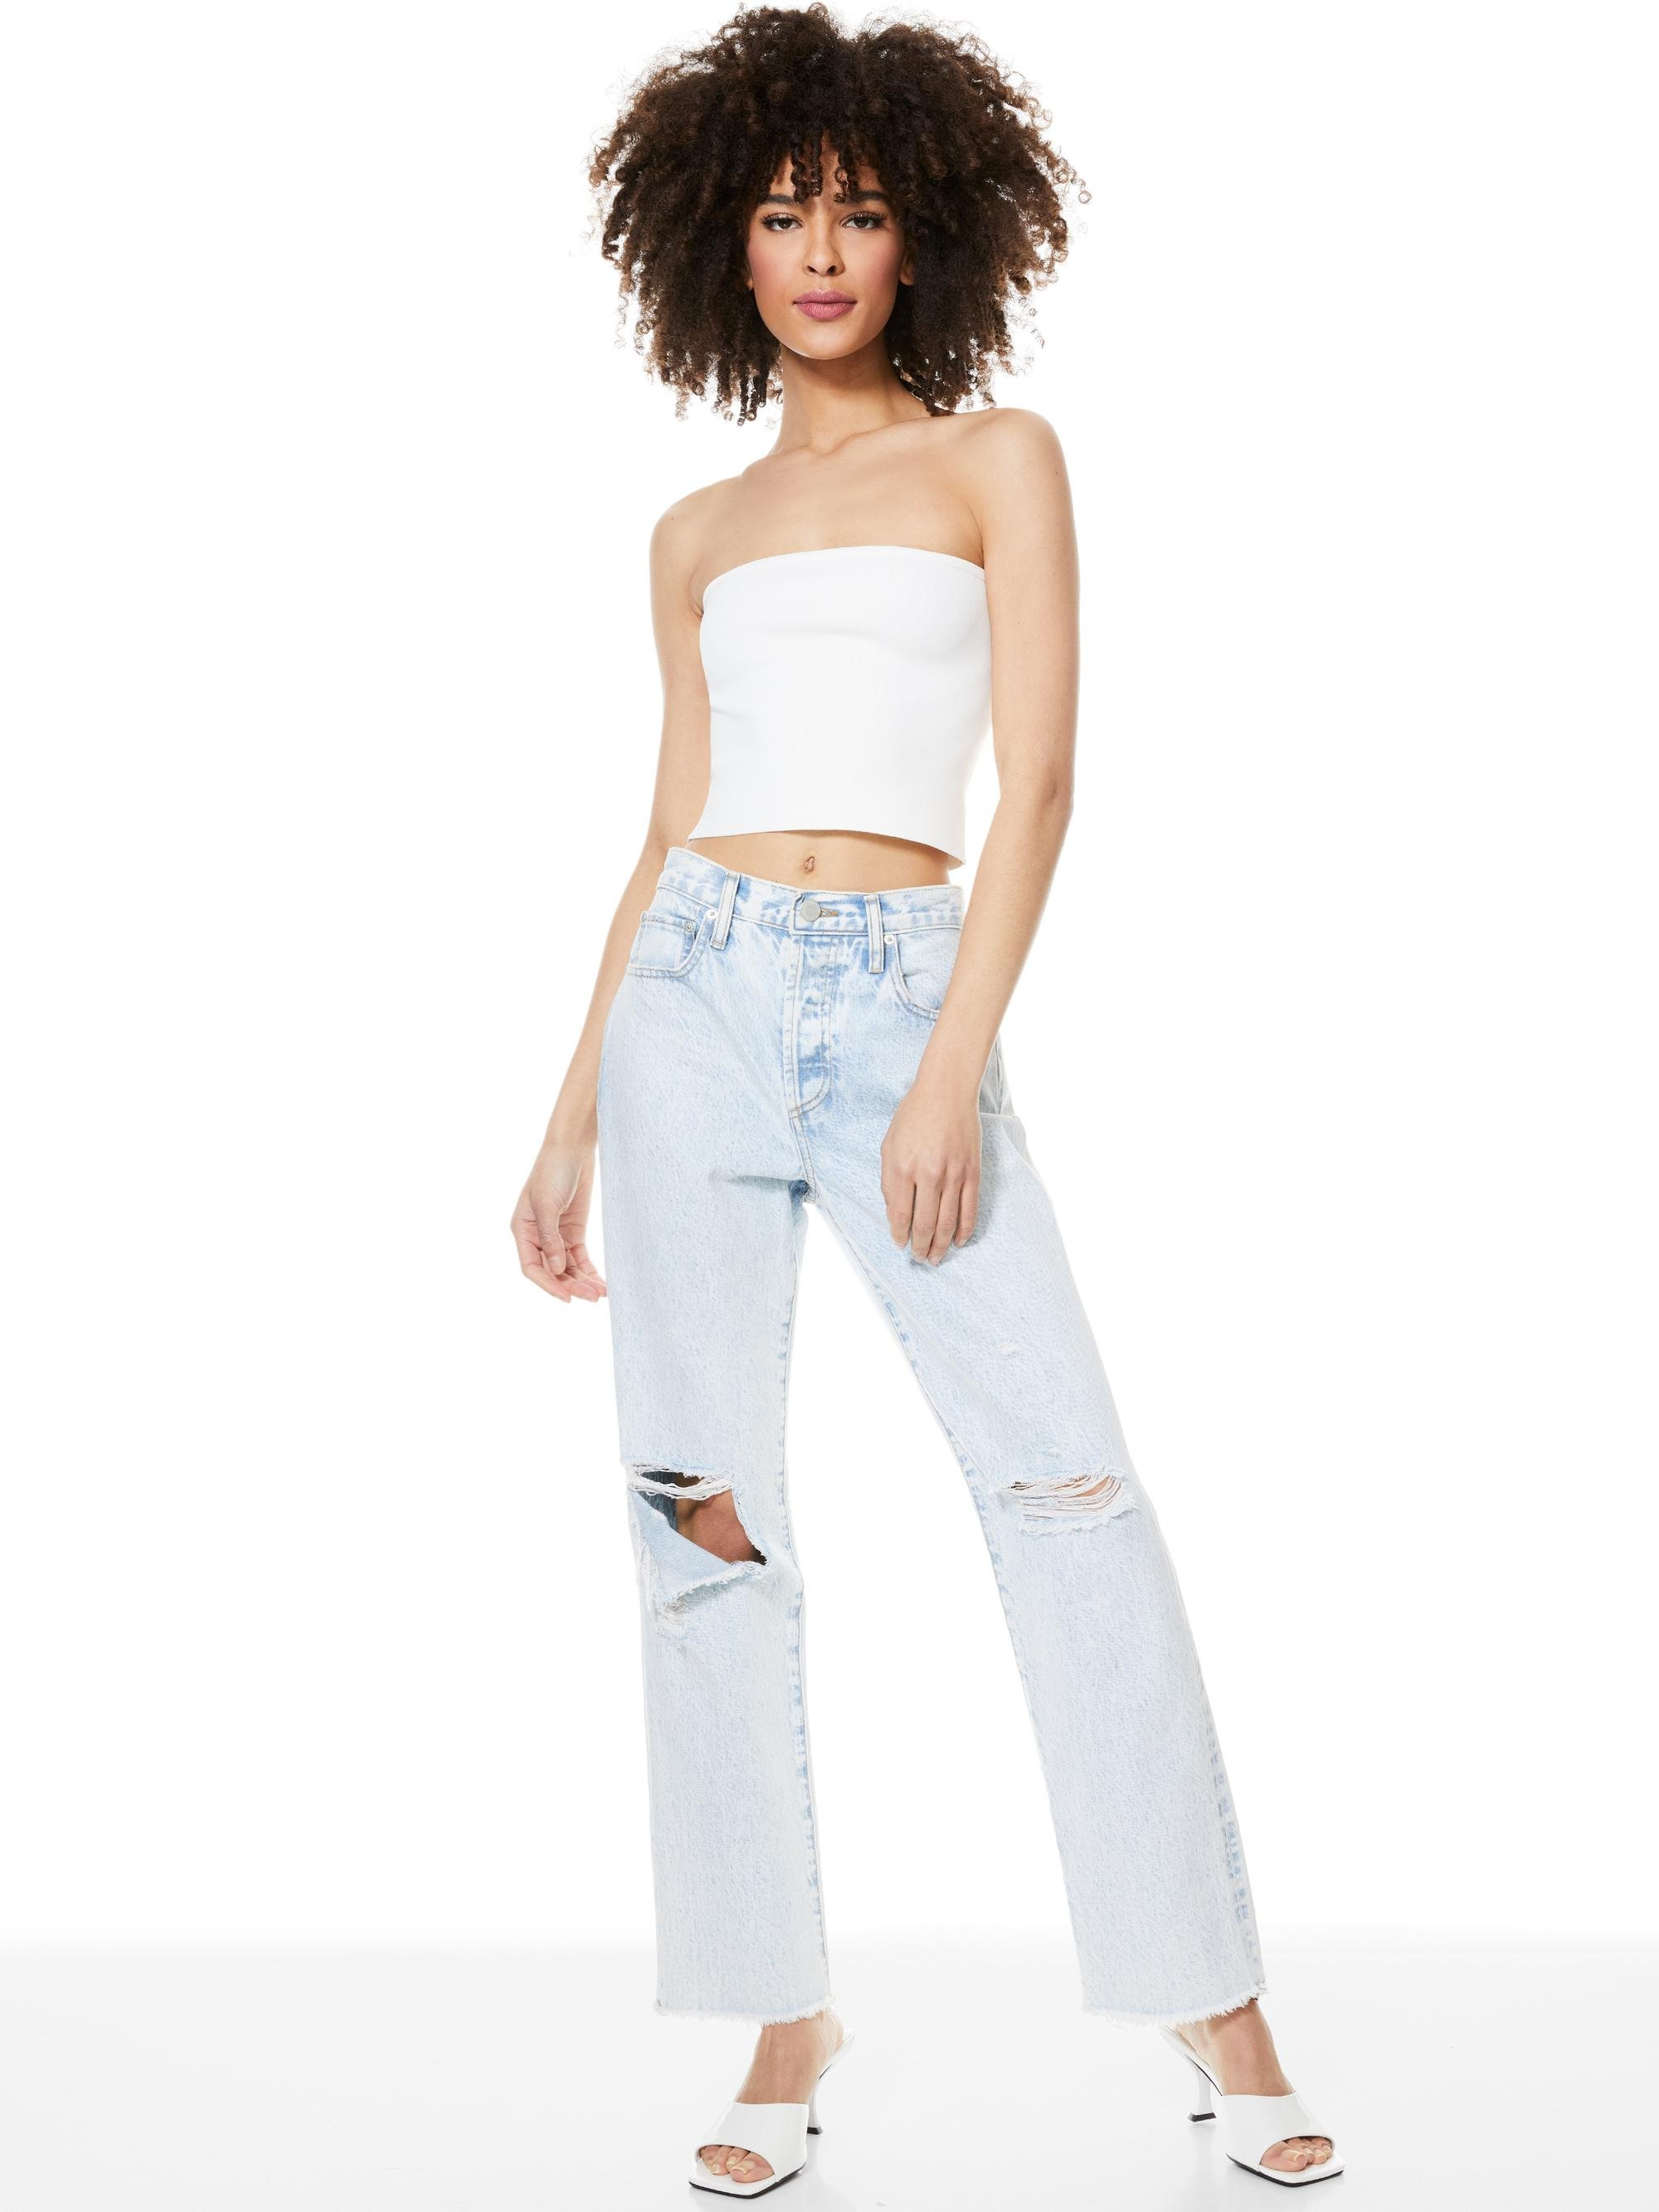 ALISON CROPPED TUBE TOP 2